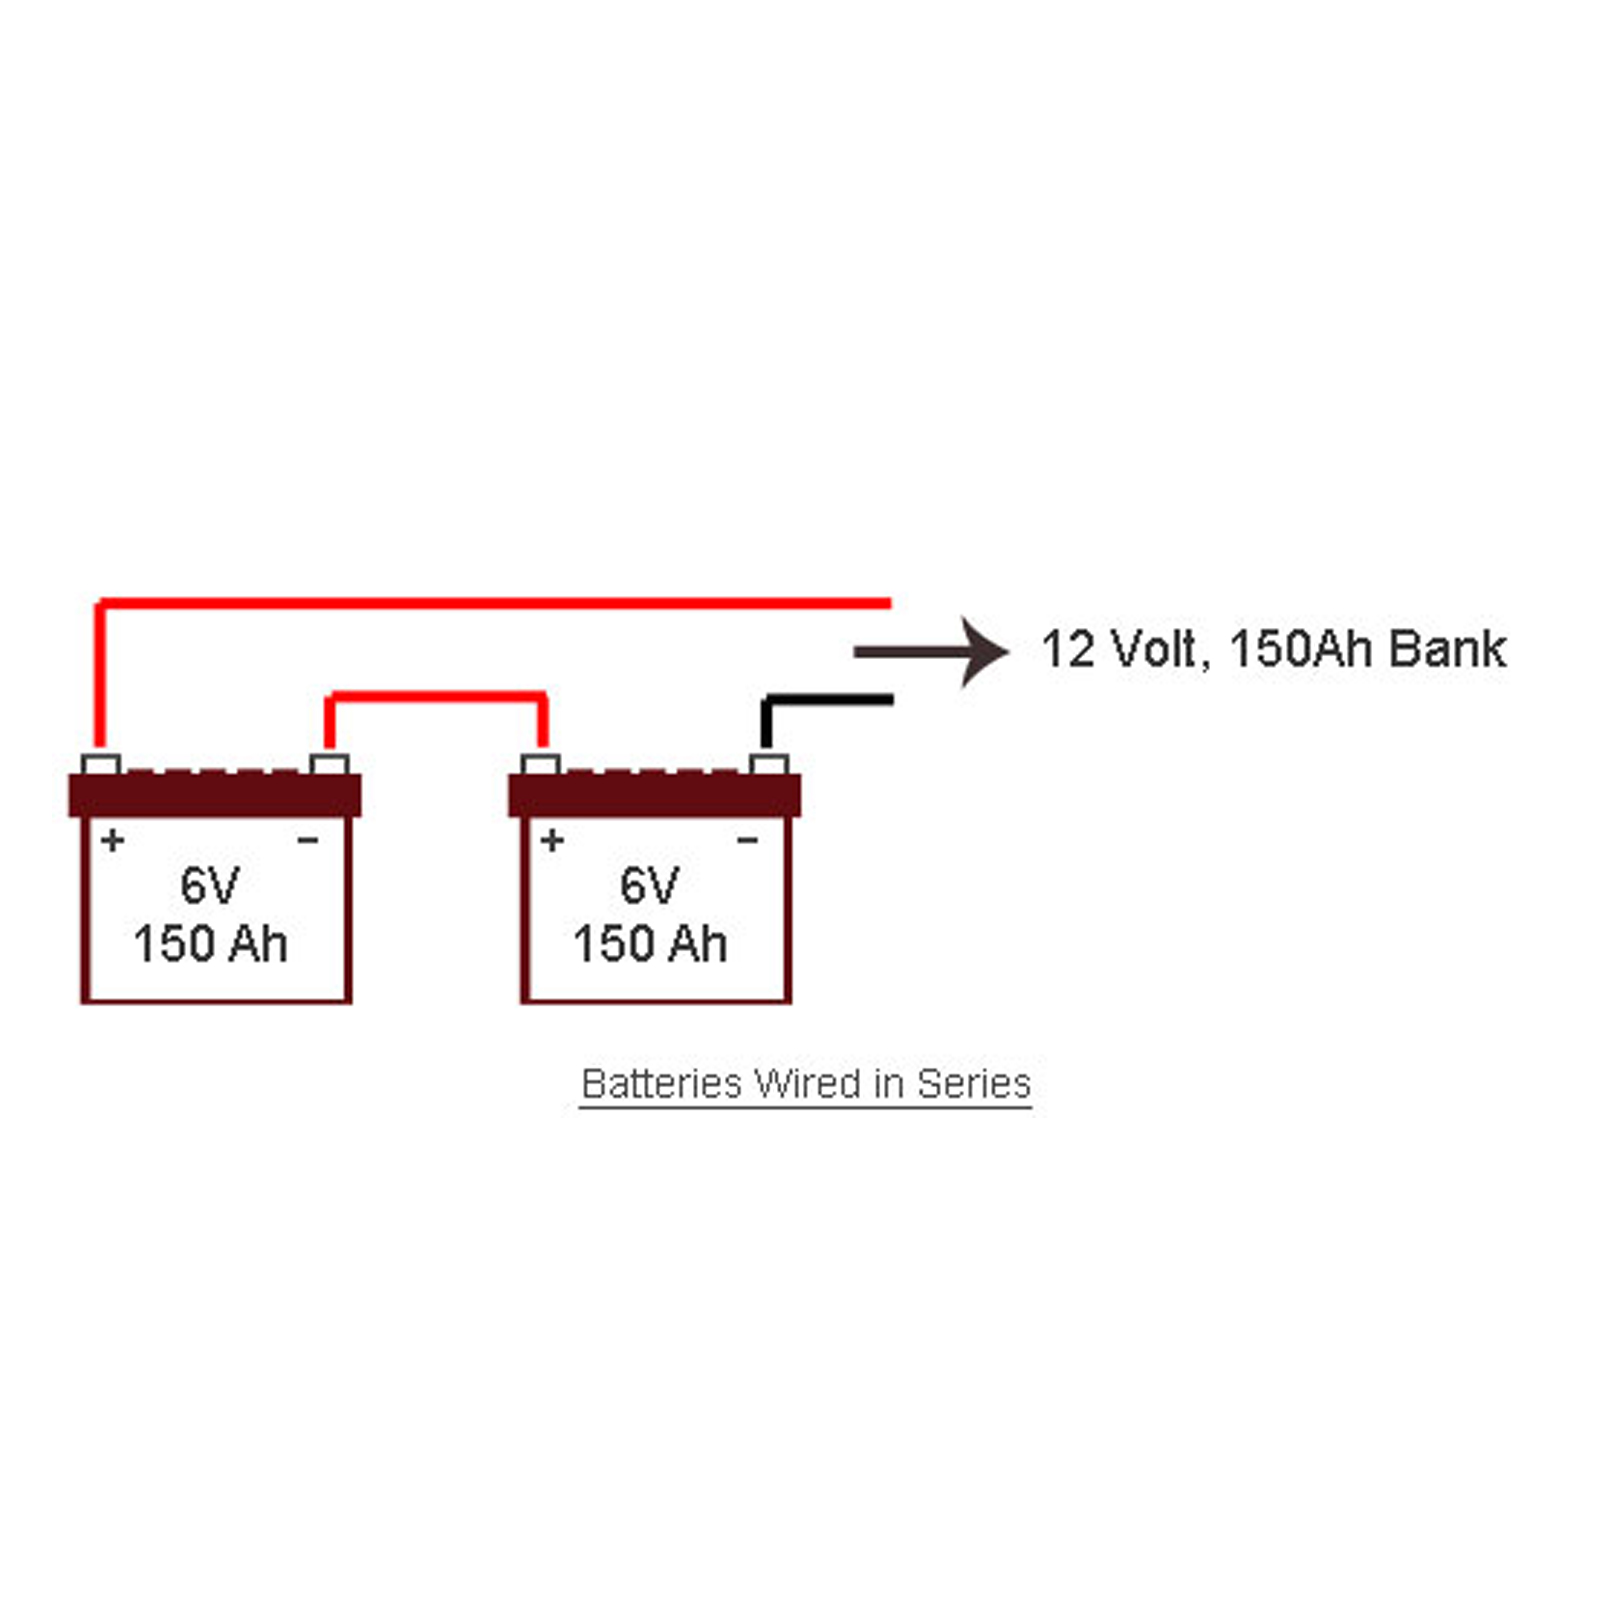 Wiring your battery bank in series, parallel and series